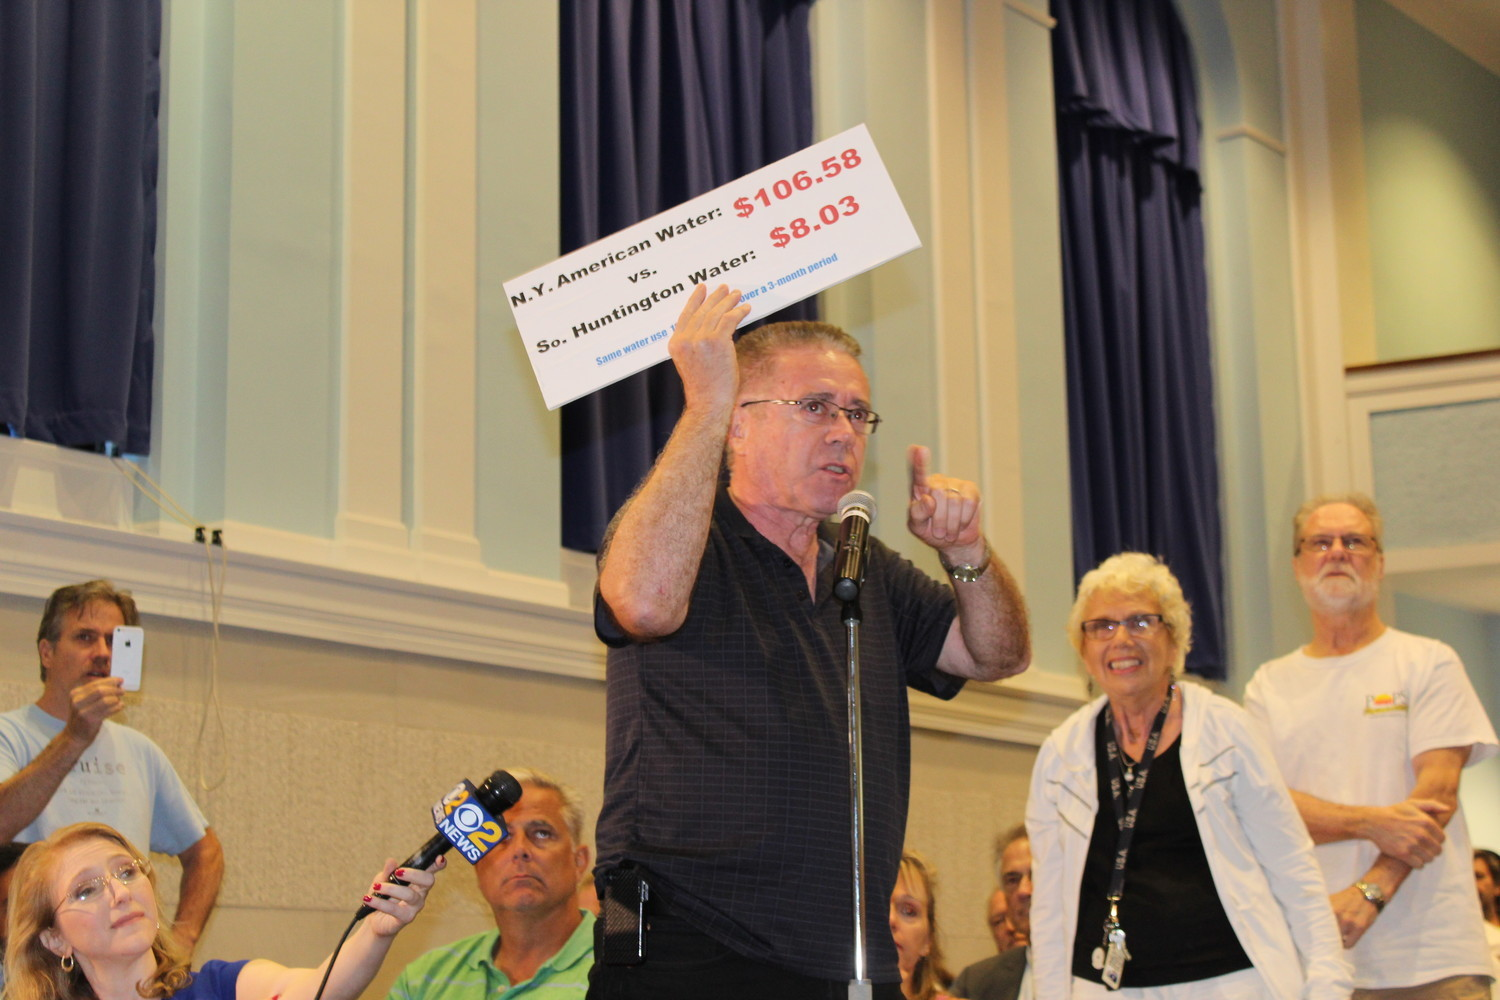 Jack McCloy, of Baldwin, protested New York American Water rate hikes during a recent town hall in East Rockaway. Those increases were temporarily halted, thanks to an agreement reached over the weekend between NYAW and the state.